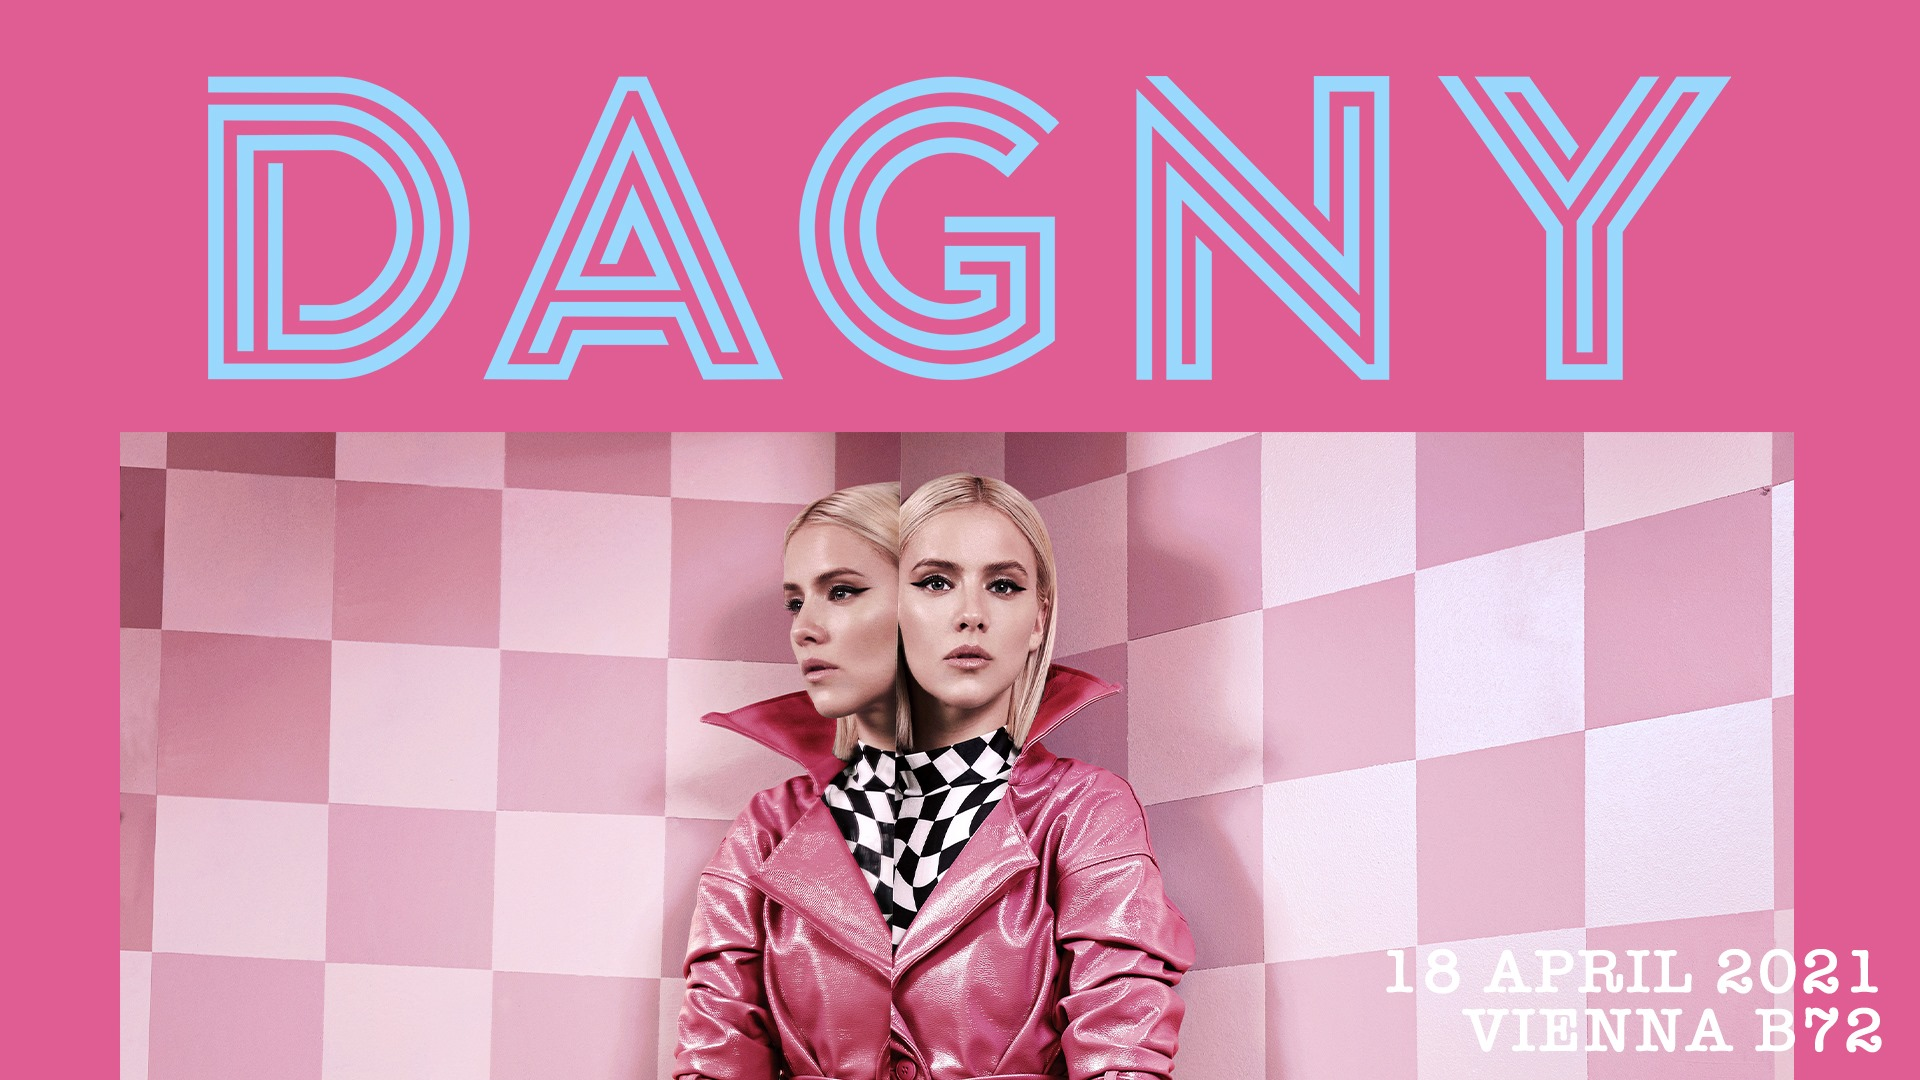 Dagny am 18. April 2021 @ B72.